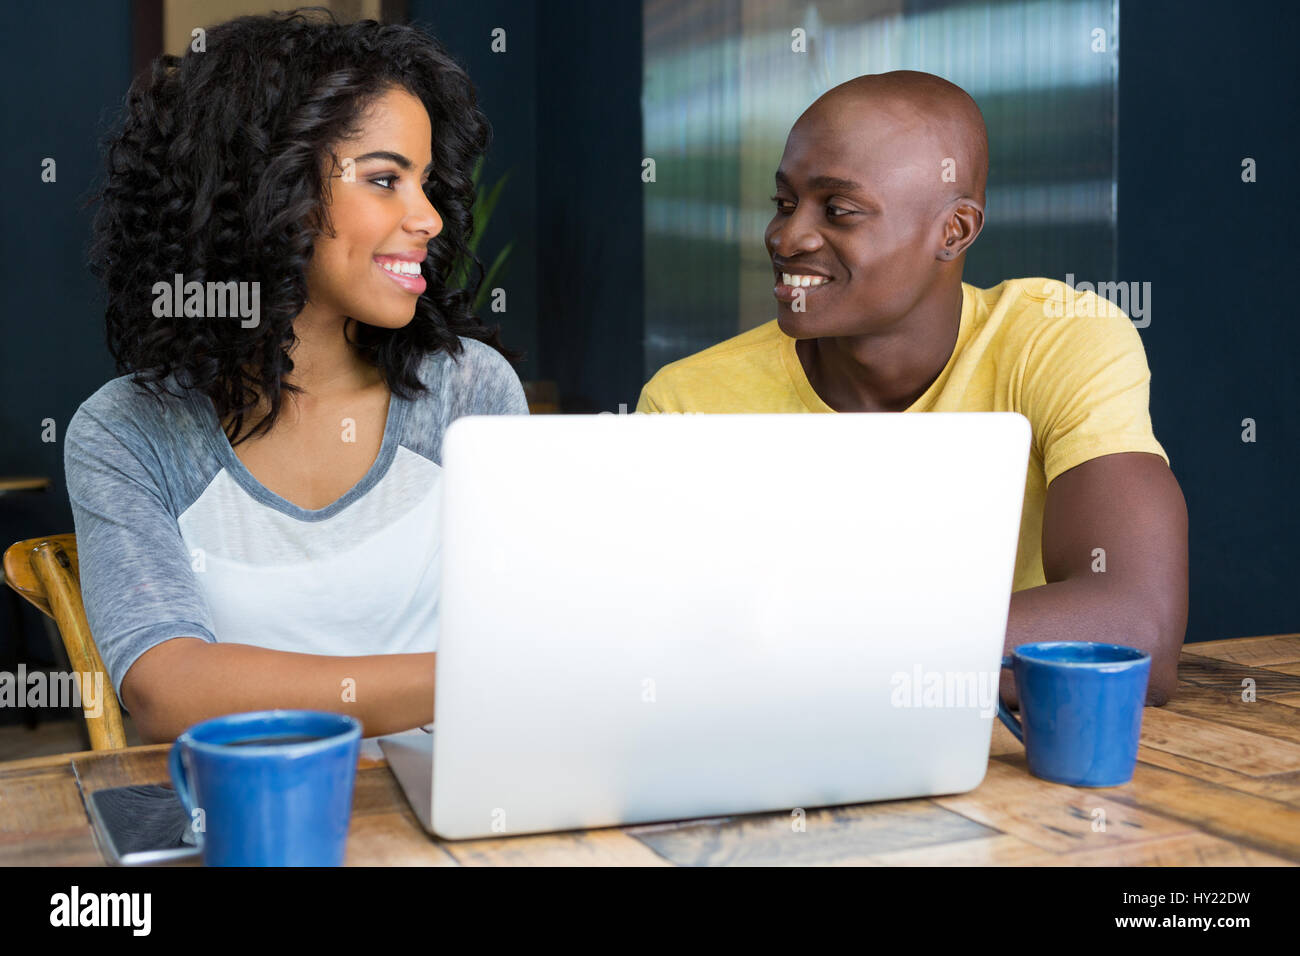 Smiling couple looking at each other with laptop on table in coffee shop - Stock Image